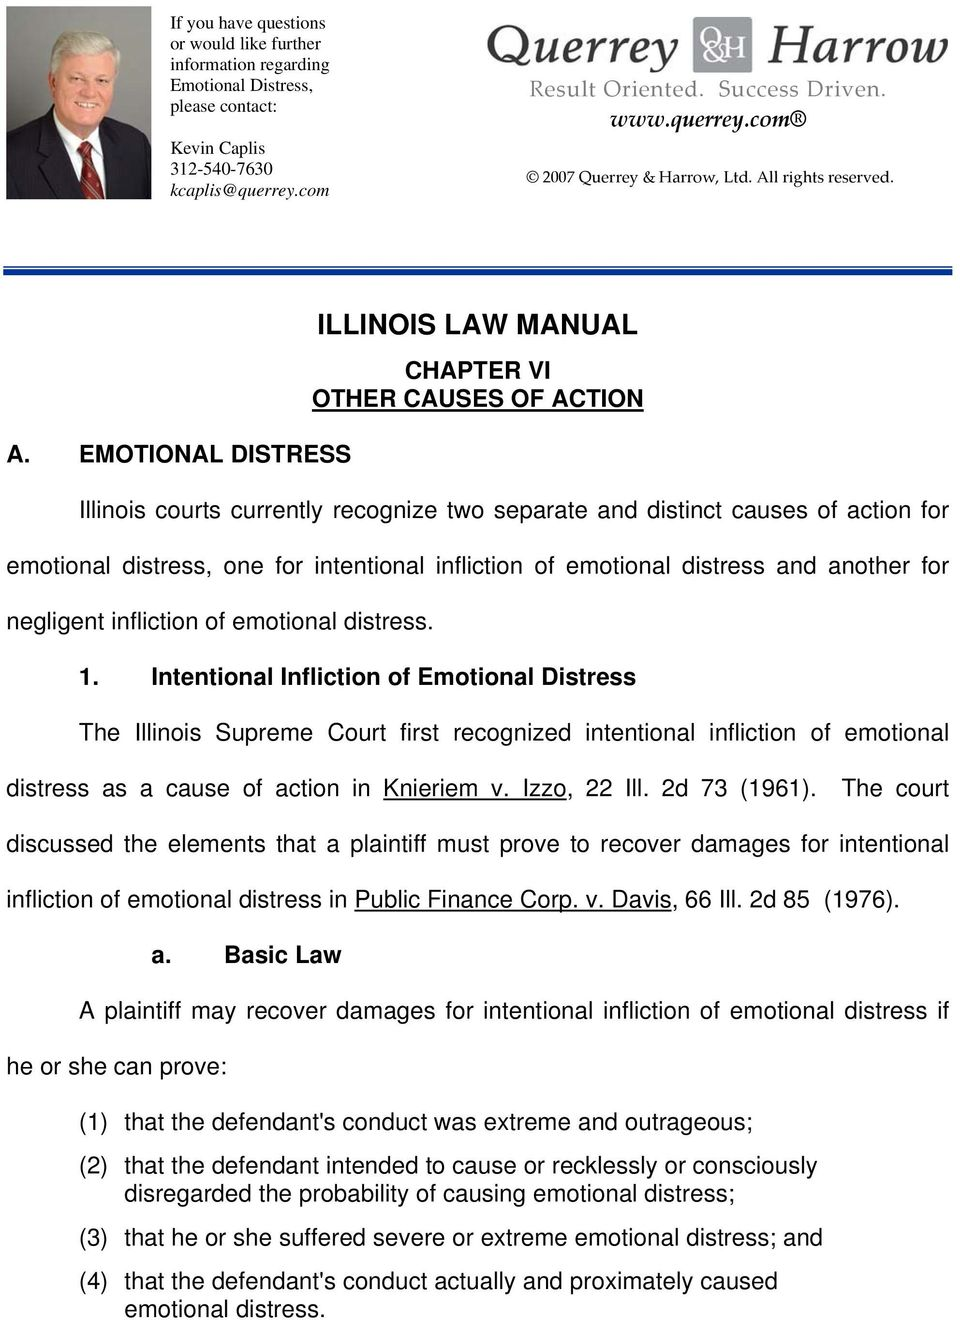 EMOTIONAL DISTRESS ILLINOIS LAW MANUAL CHAPTER VI OTHER CAUSES OF ACTION Illinois courts currently recognize two separate and distinct causes of action for emotional distress, one for intentional